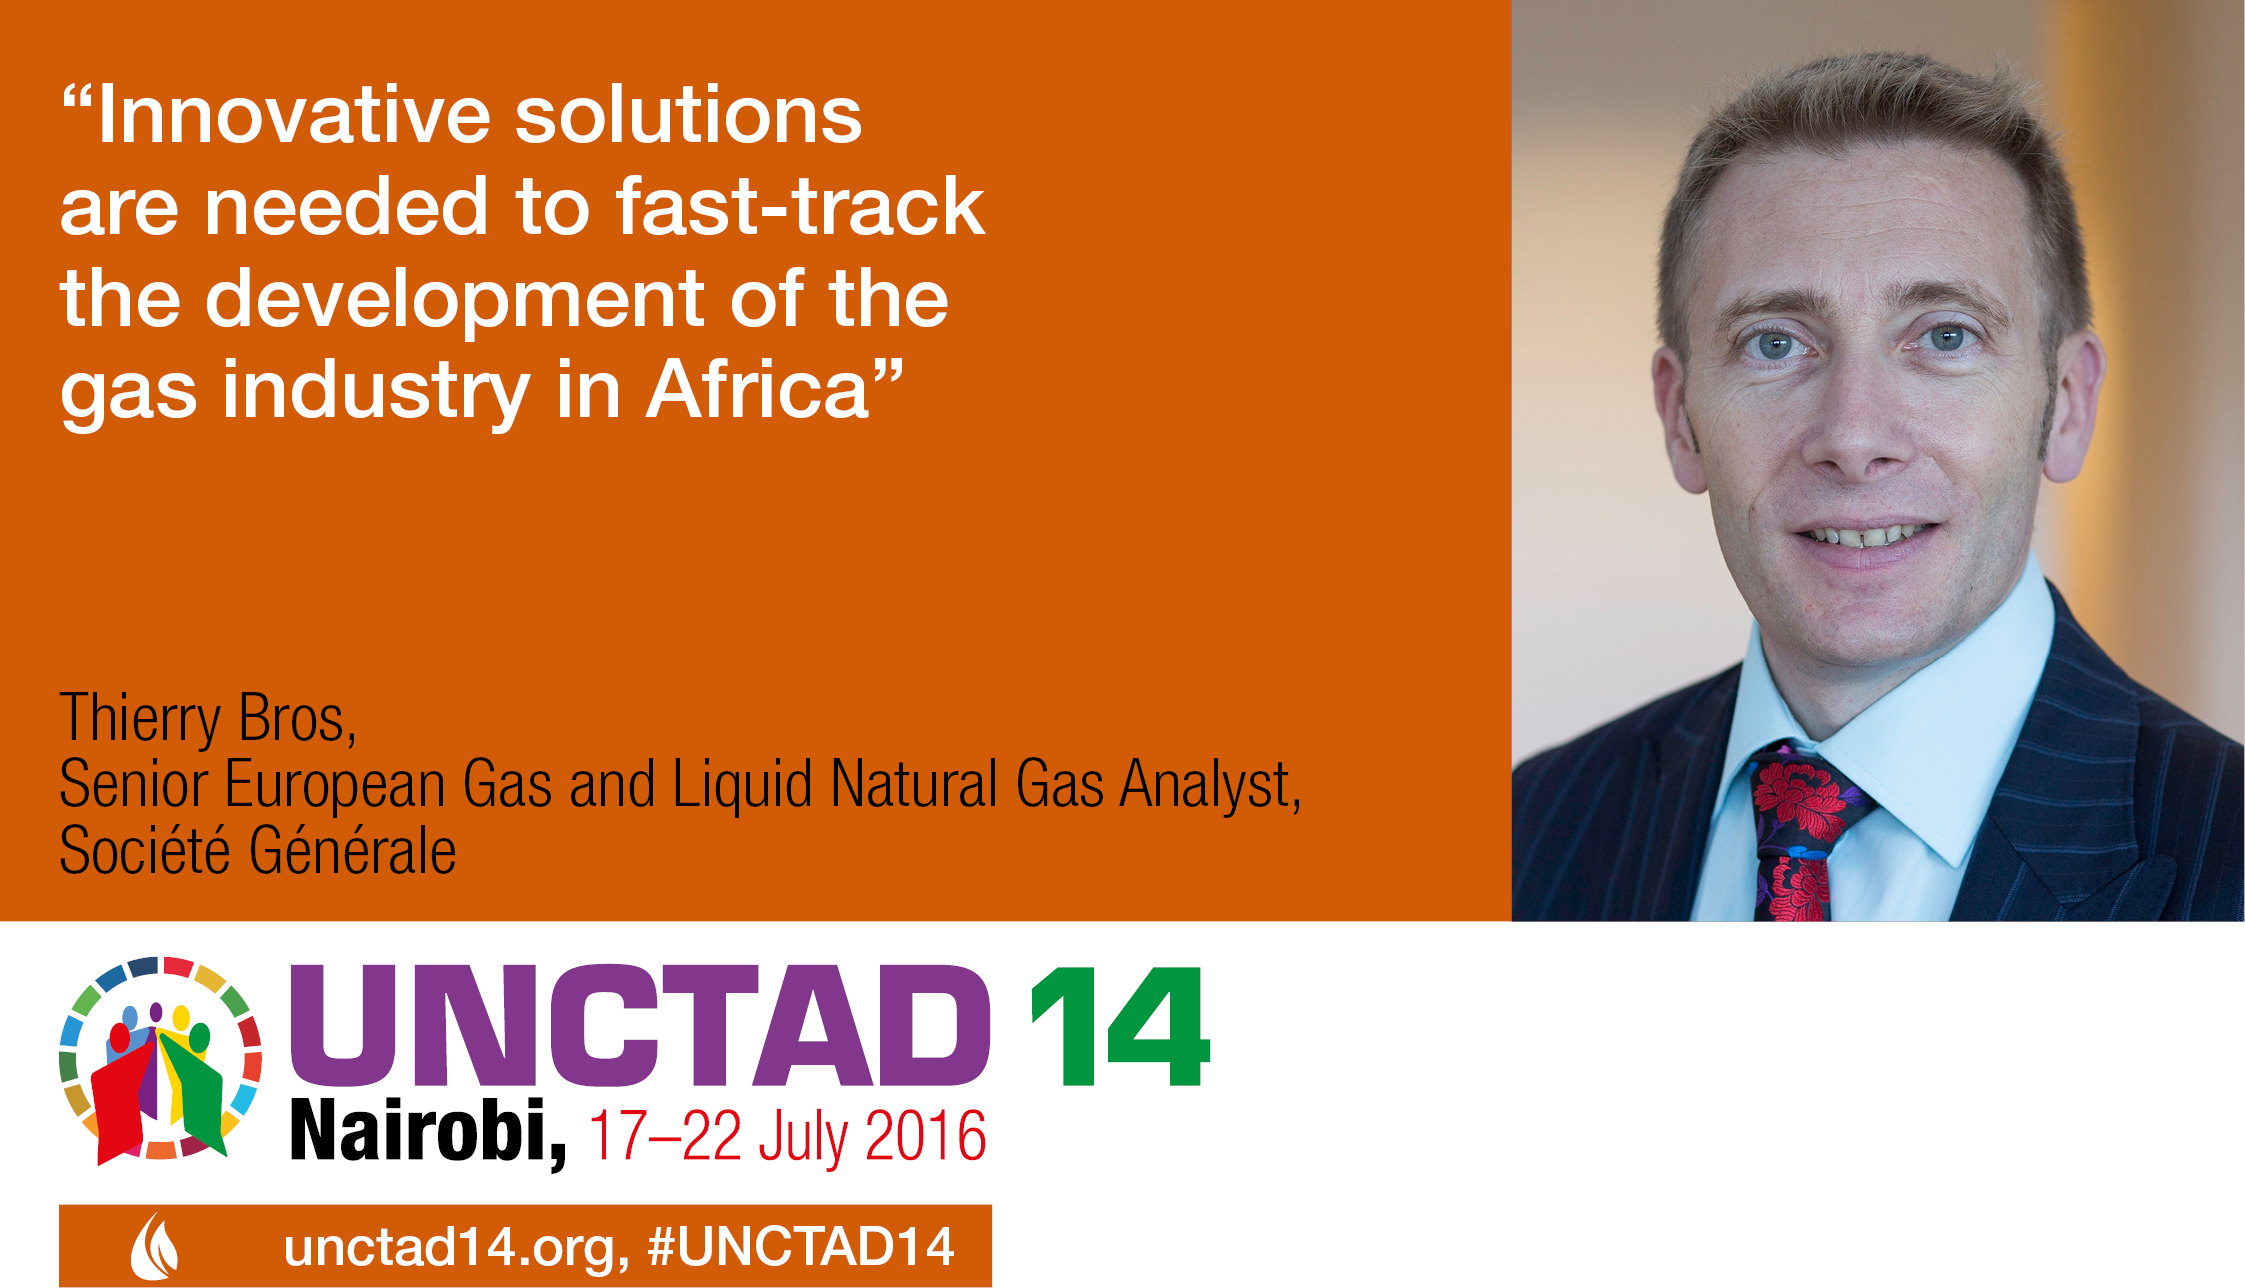 Programme   of the Natural Gas session at the Global Commodities Forum of UNCTAD in Nairobi